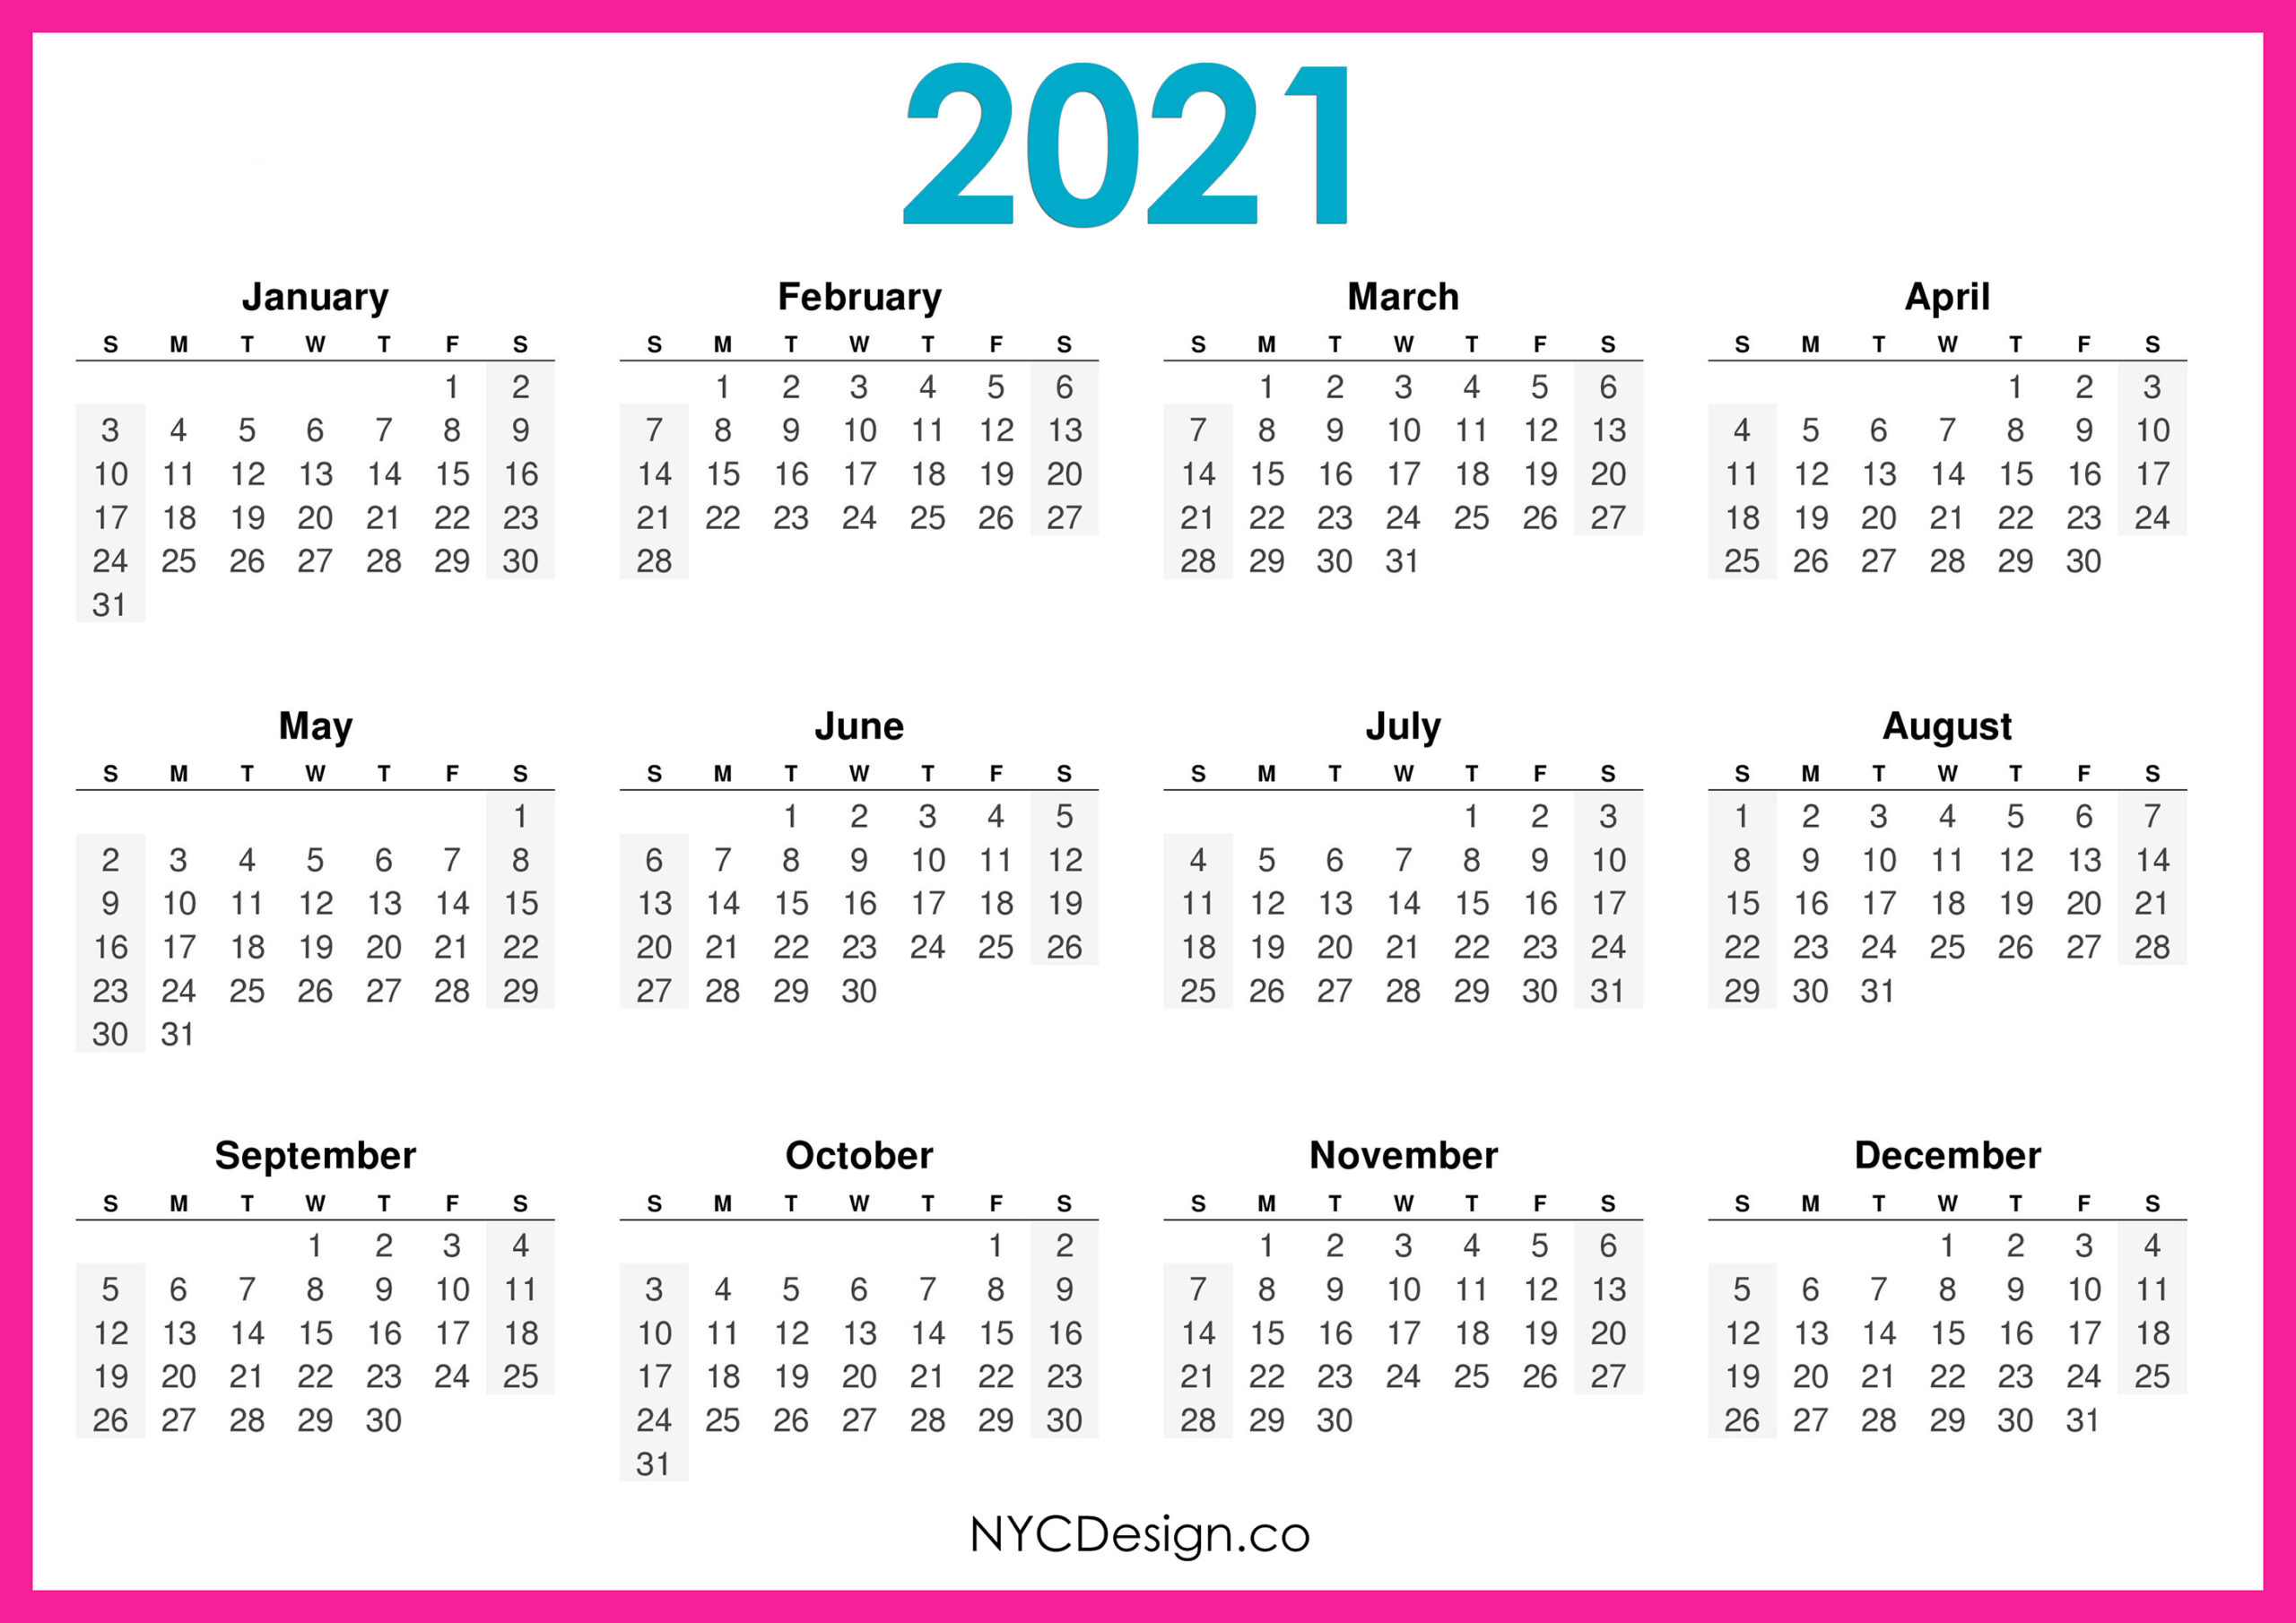 Free 2021 Yearly Calender Template / 12 Month Colorful